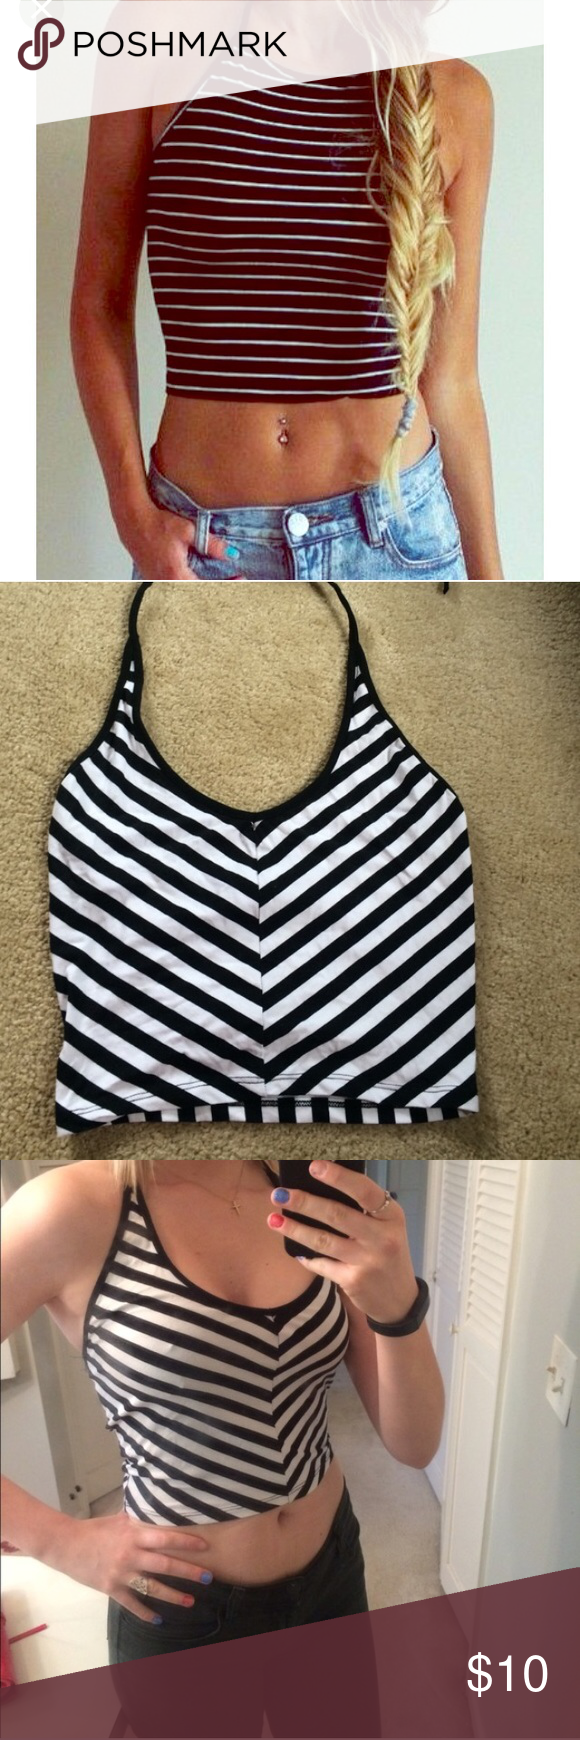 Halter crop top FIRST PICTURE isn't mine- all others are. Open back! Wear this with a halter black bralette and you're set! Great condition. Ambiance Apparel Tops Crop Tops